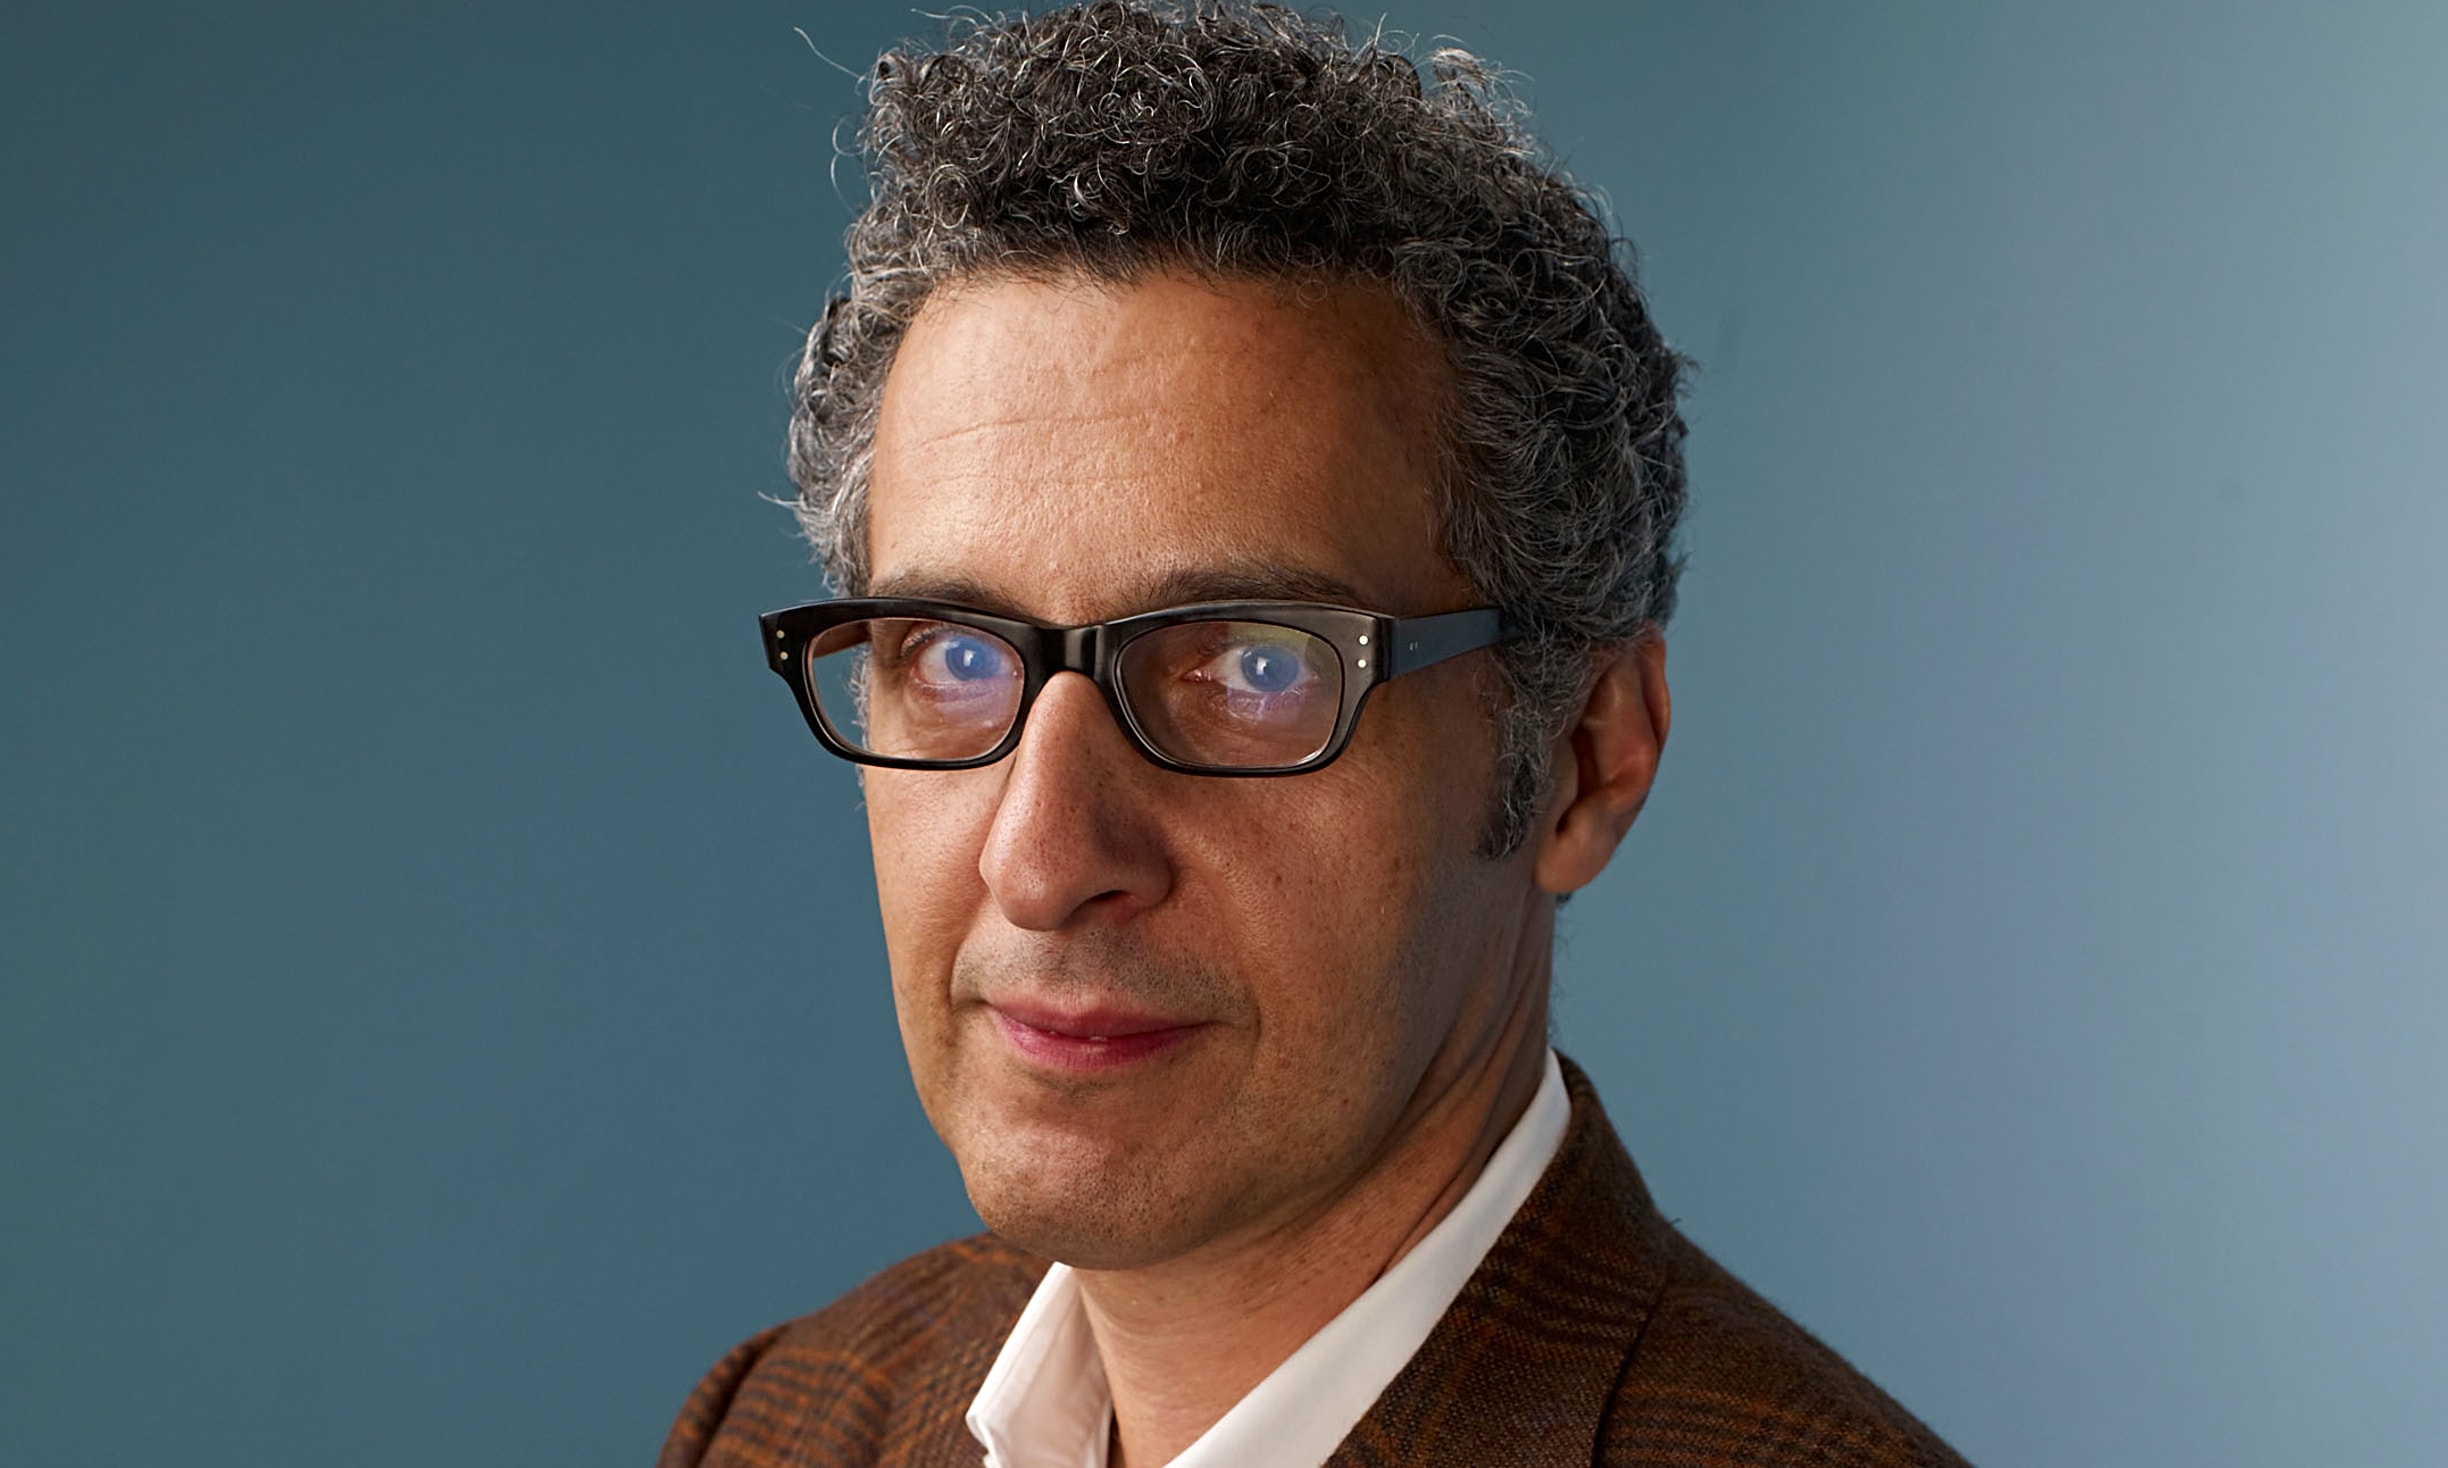 John Turturro Widescreen